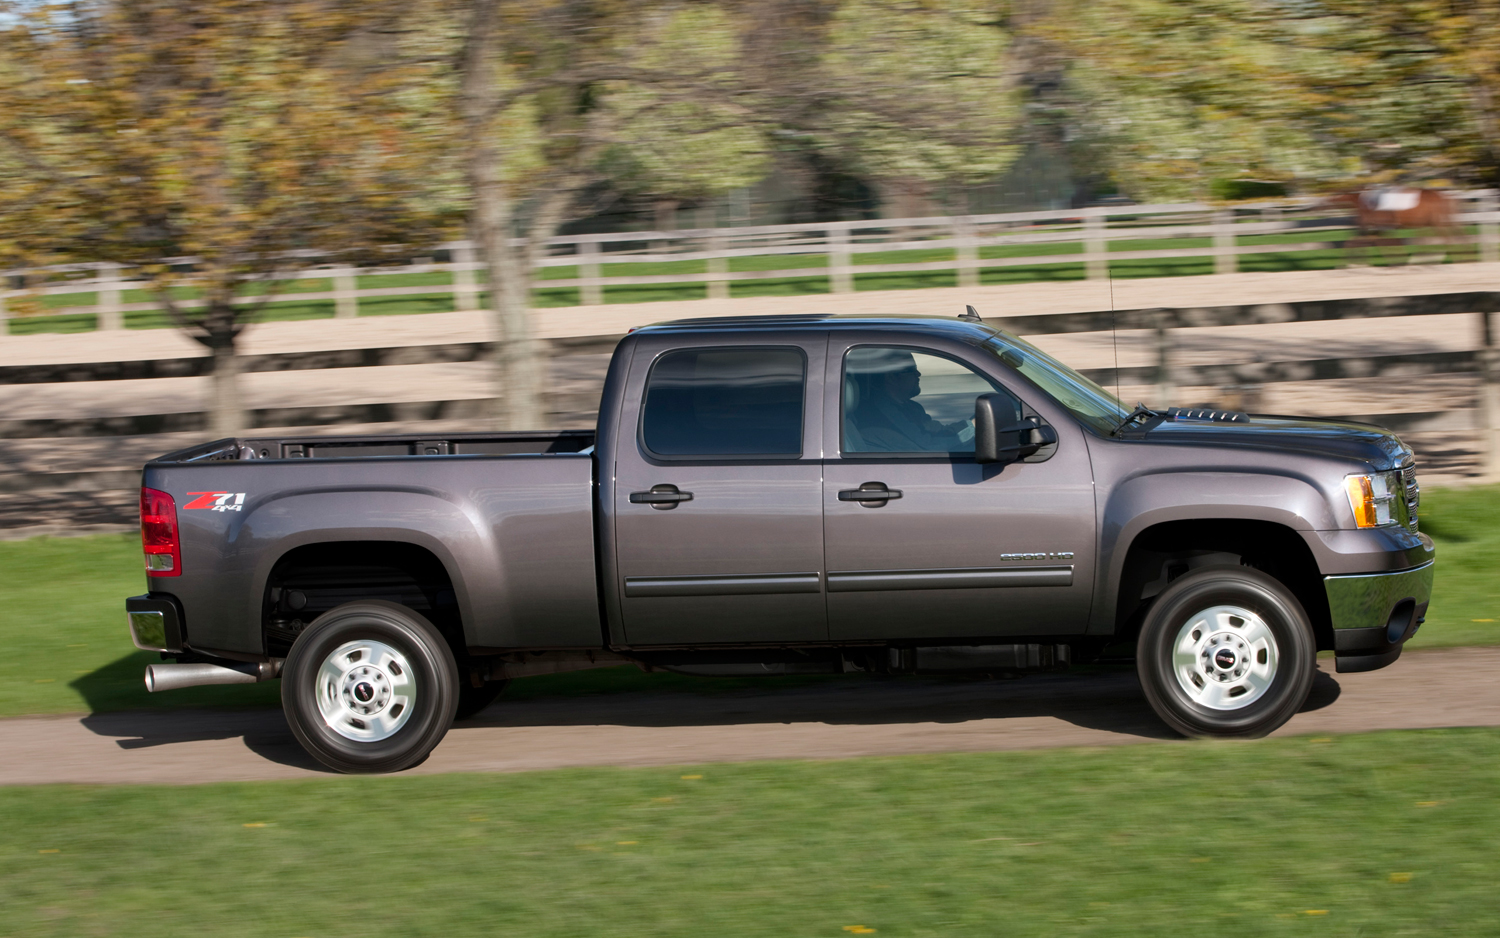 2013 GMC Sierra 2500hd #8